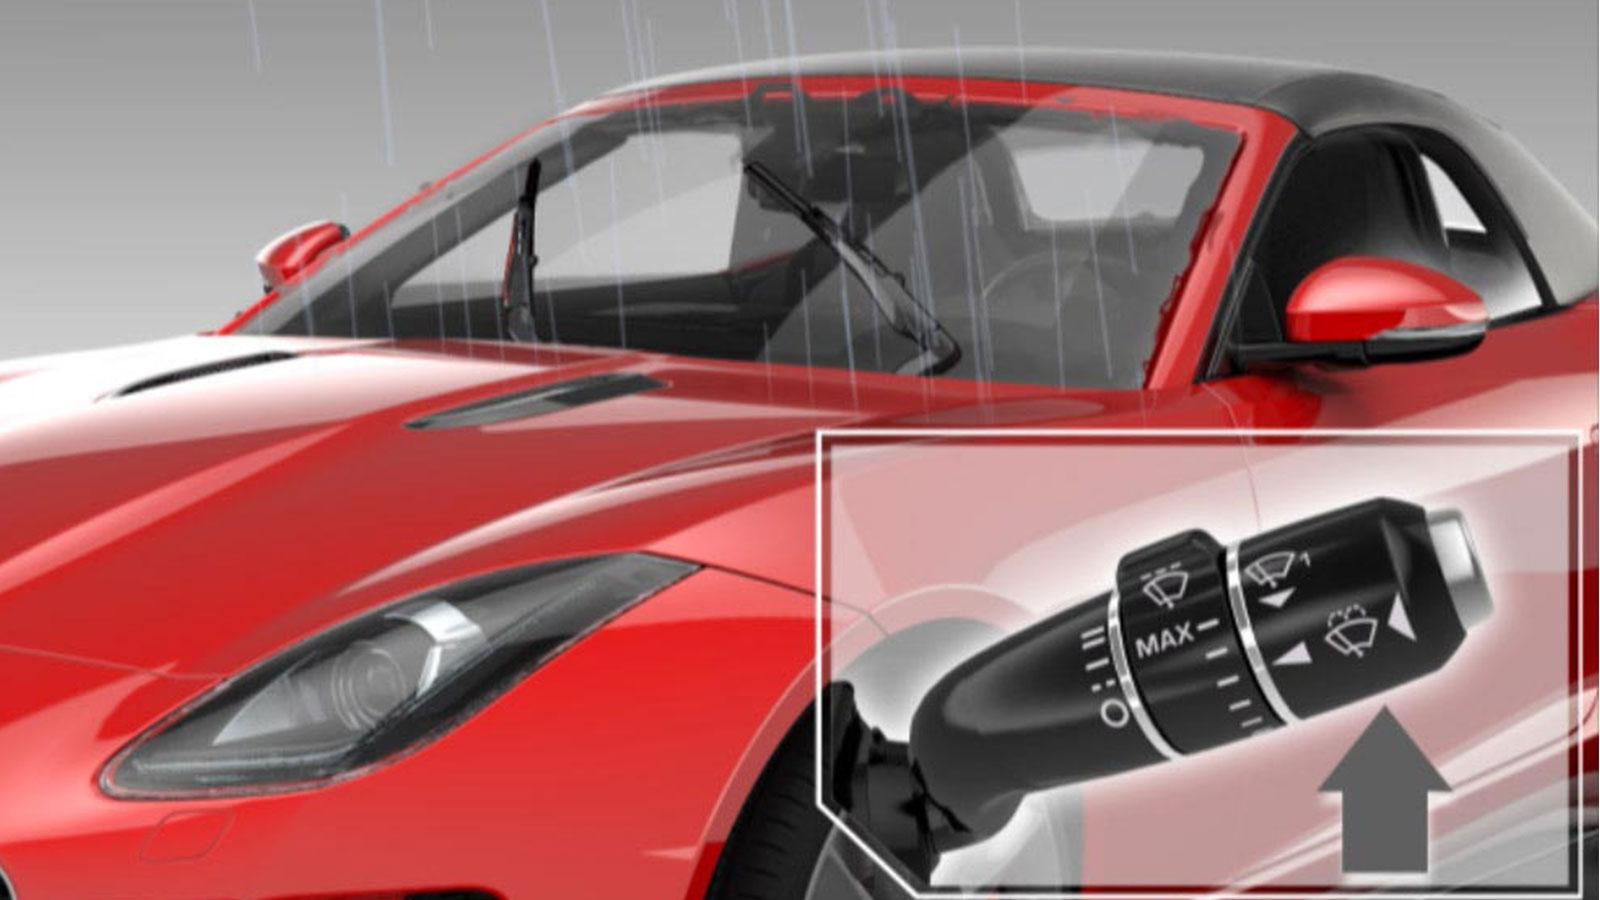 Red Jaguar F-Type With Close-Up Of Windscreen Wiper Controls.